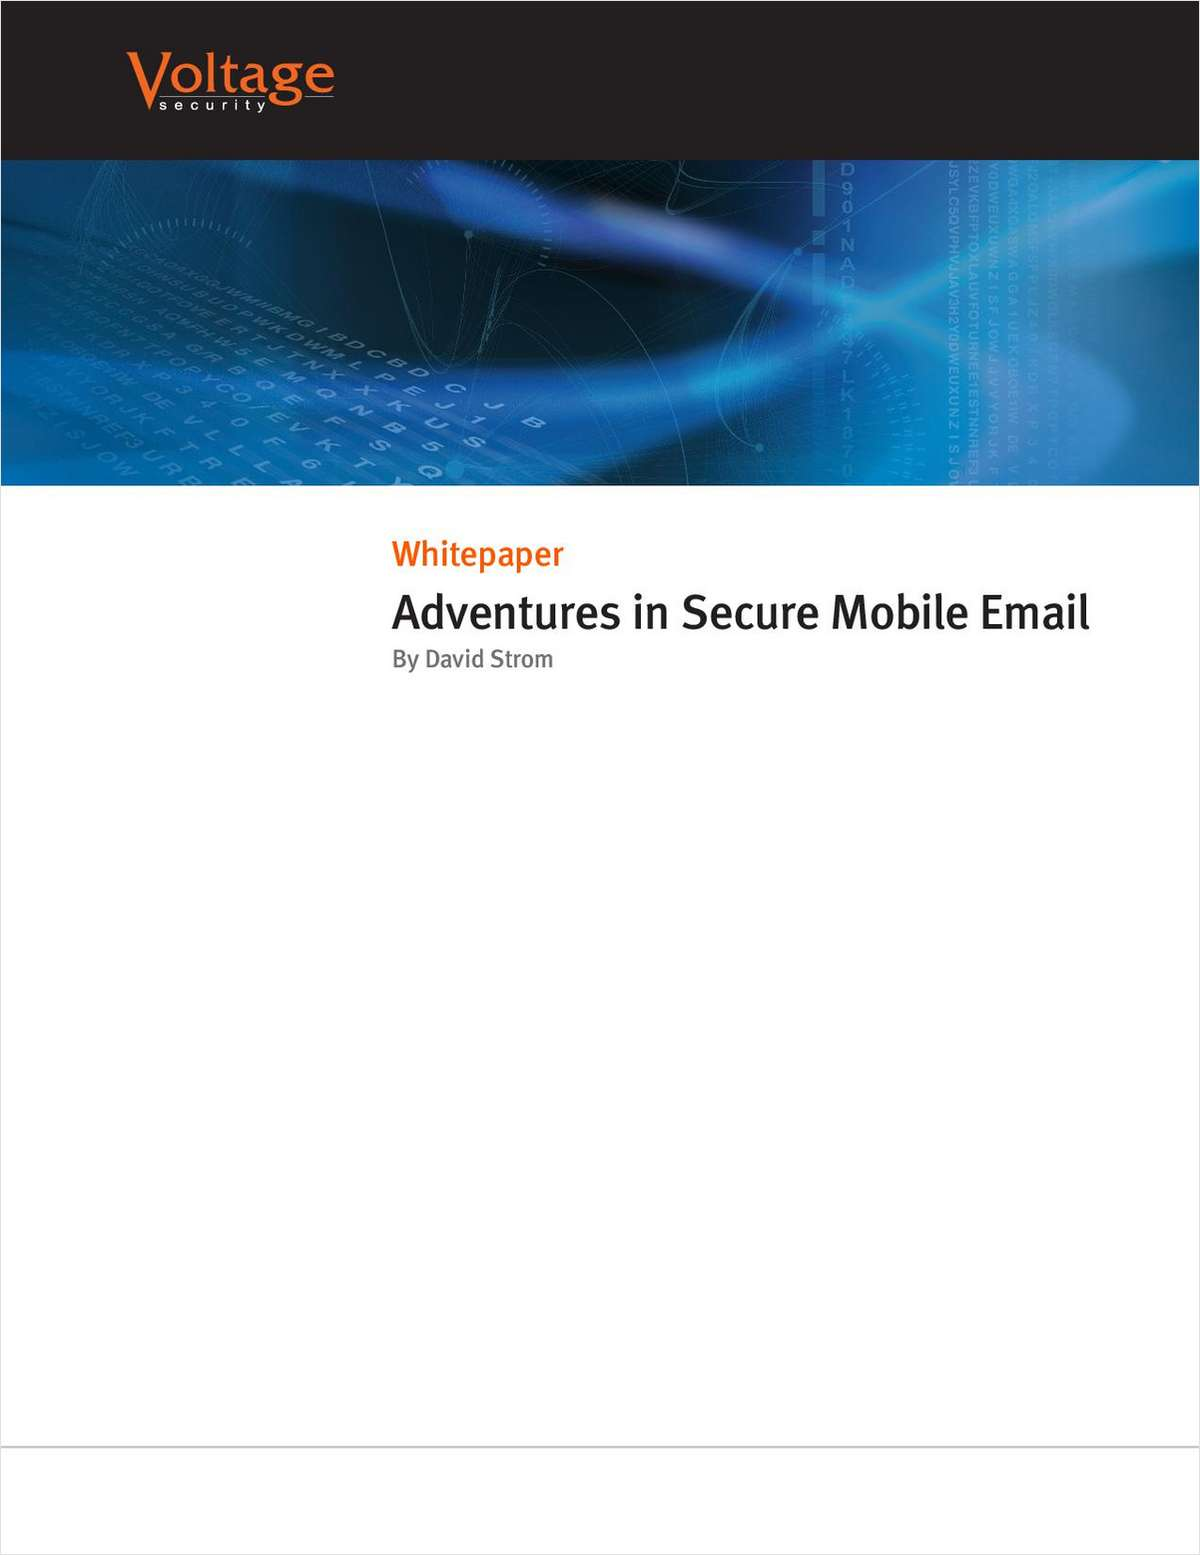 For Data Security Professionals  - Adventures in Secure Mobile Email